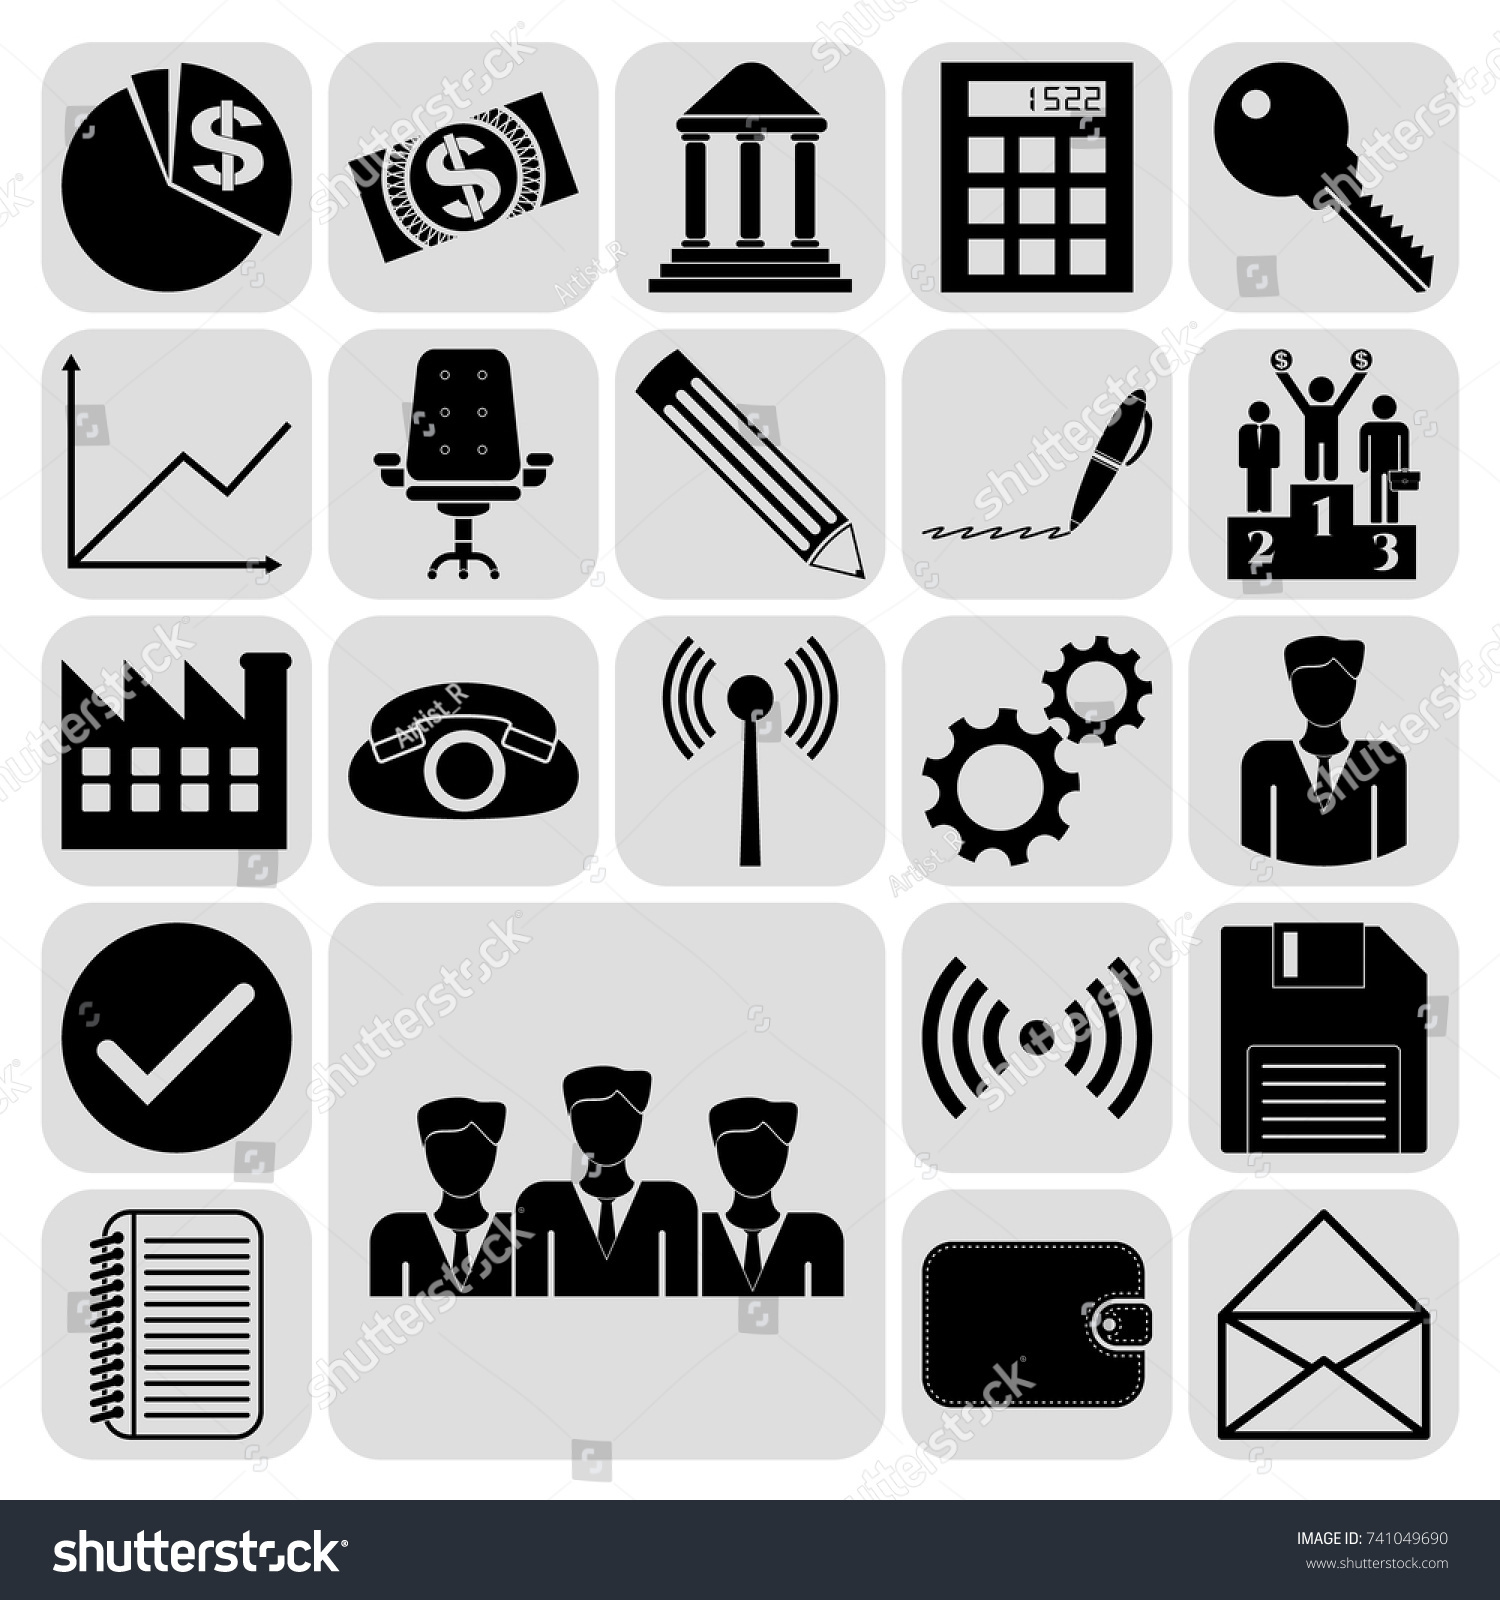 Set 22 Business Icons Symbols Collection Stock Photo Photo Vector